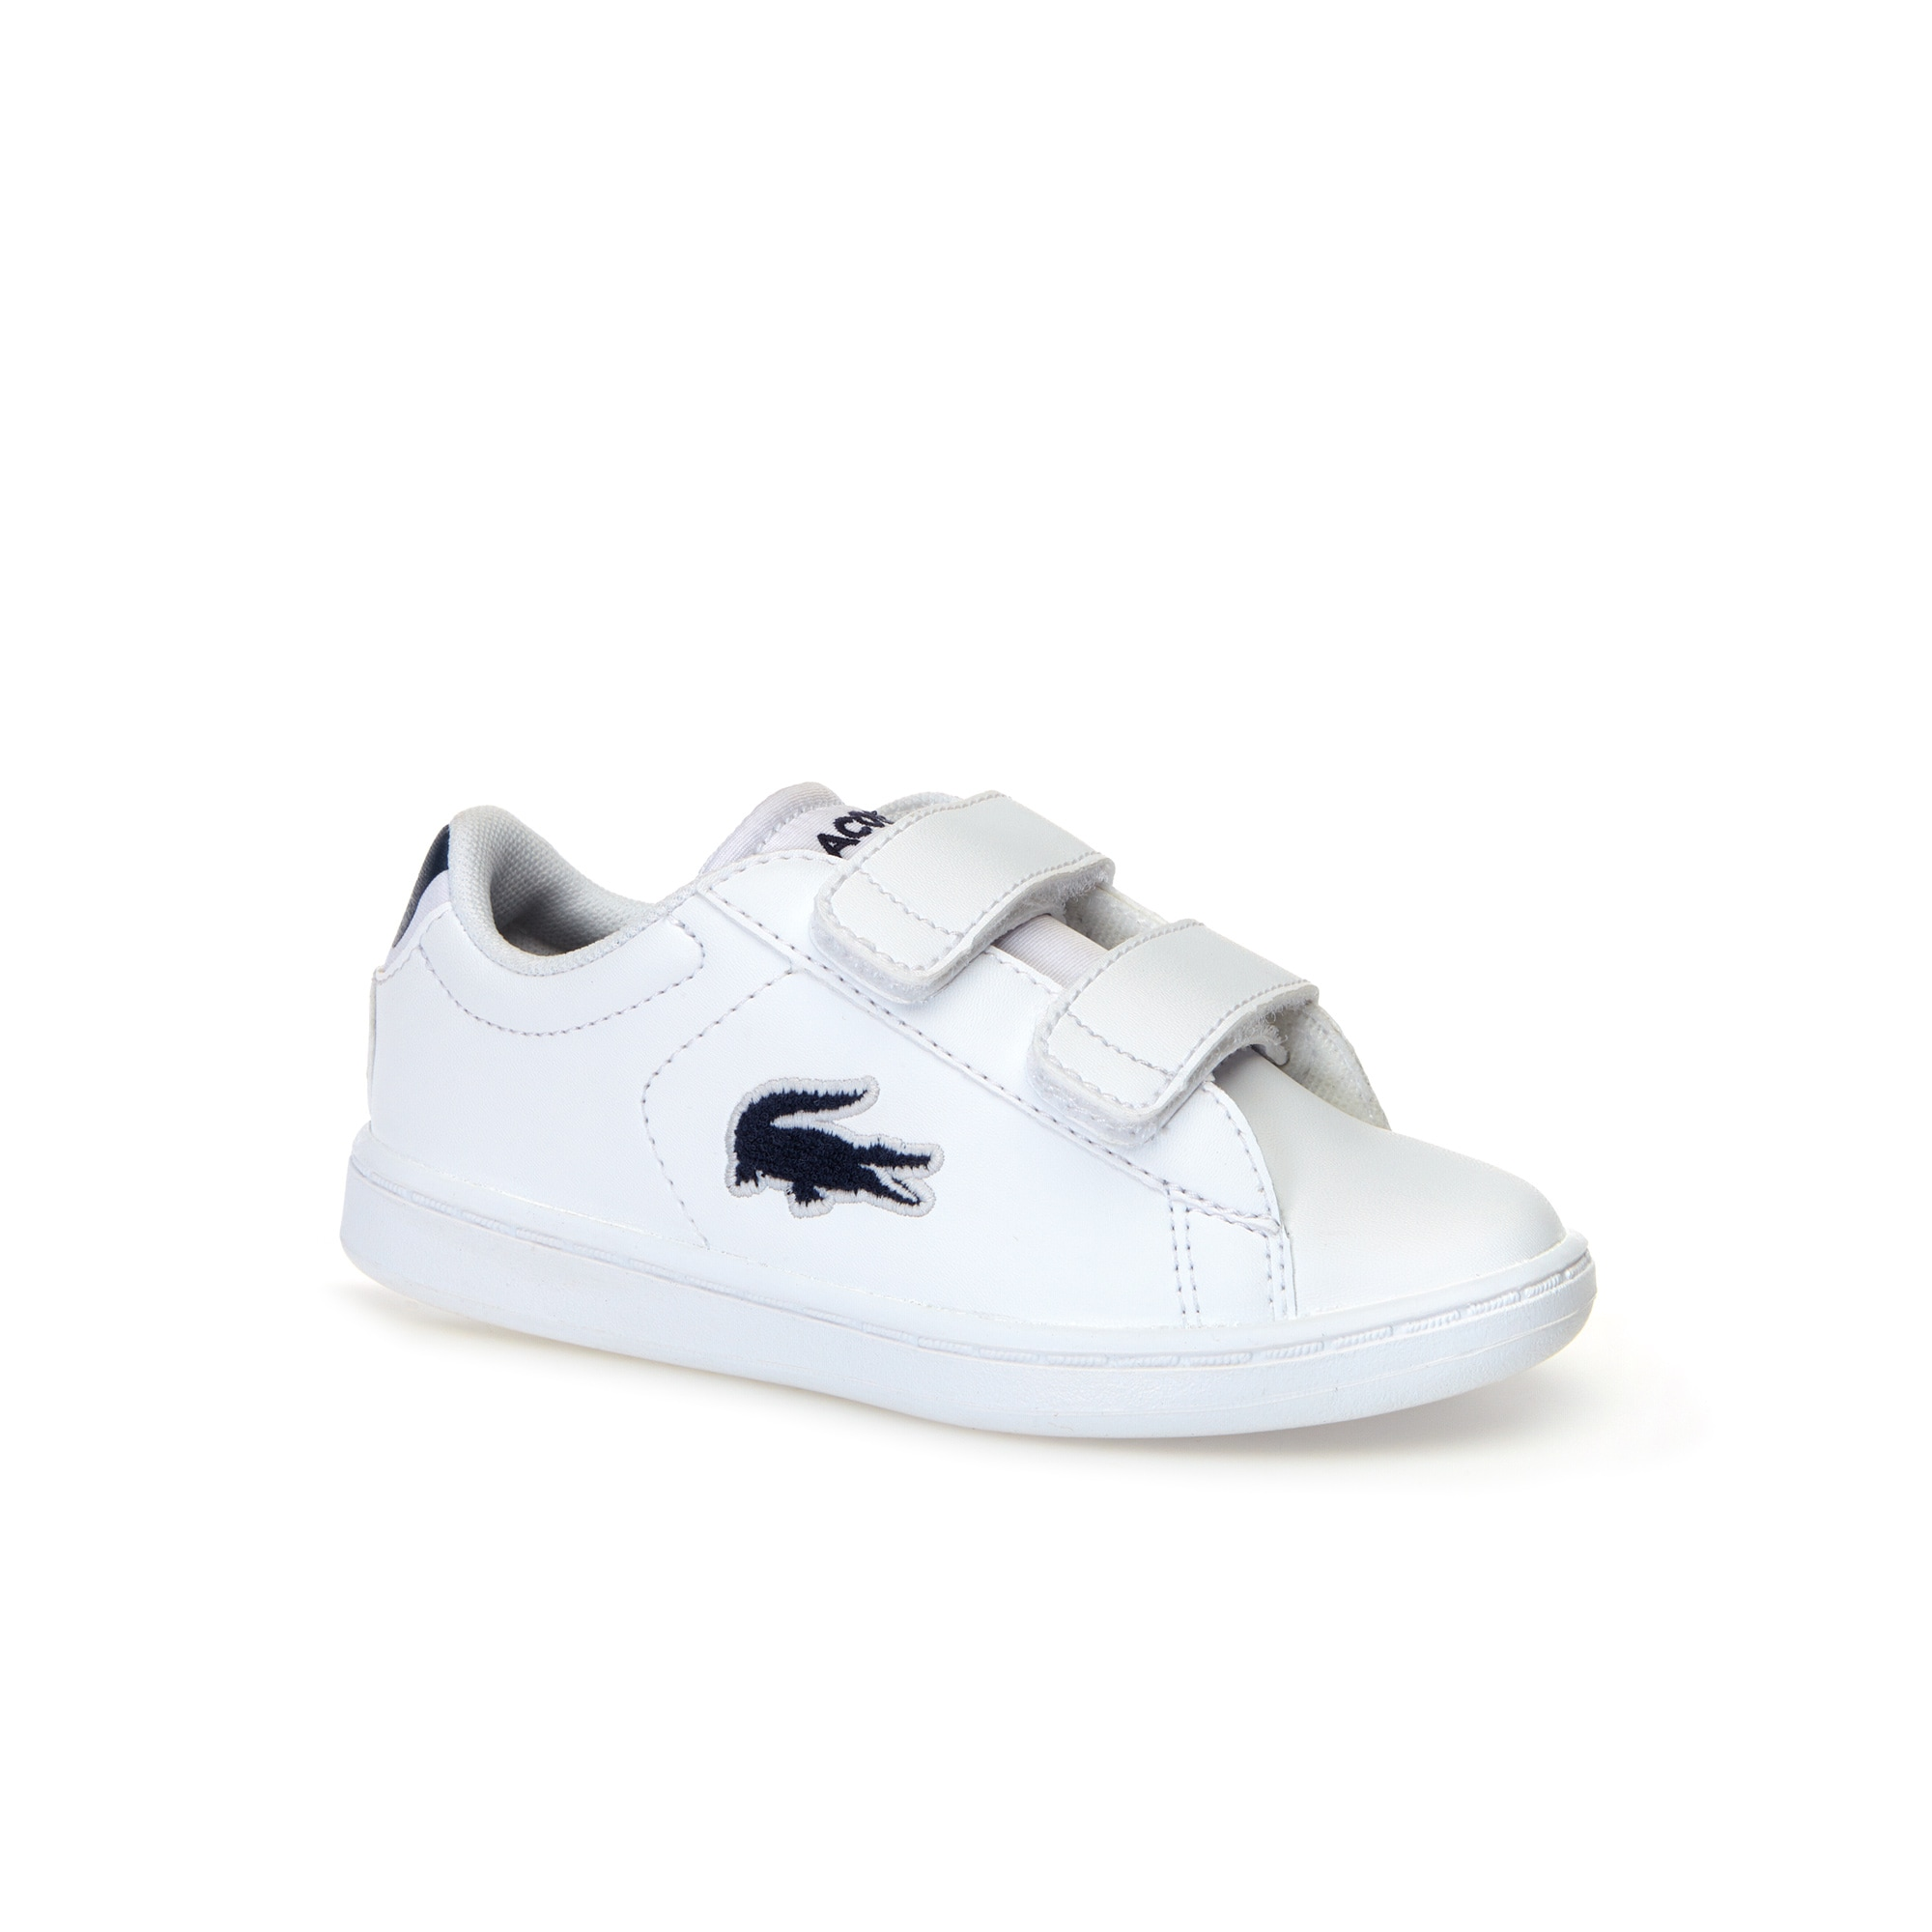 a61dc29a1b Infants' Carnaby Evo White Synthetic and Textile Trainers